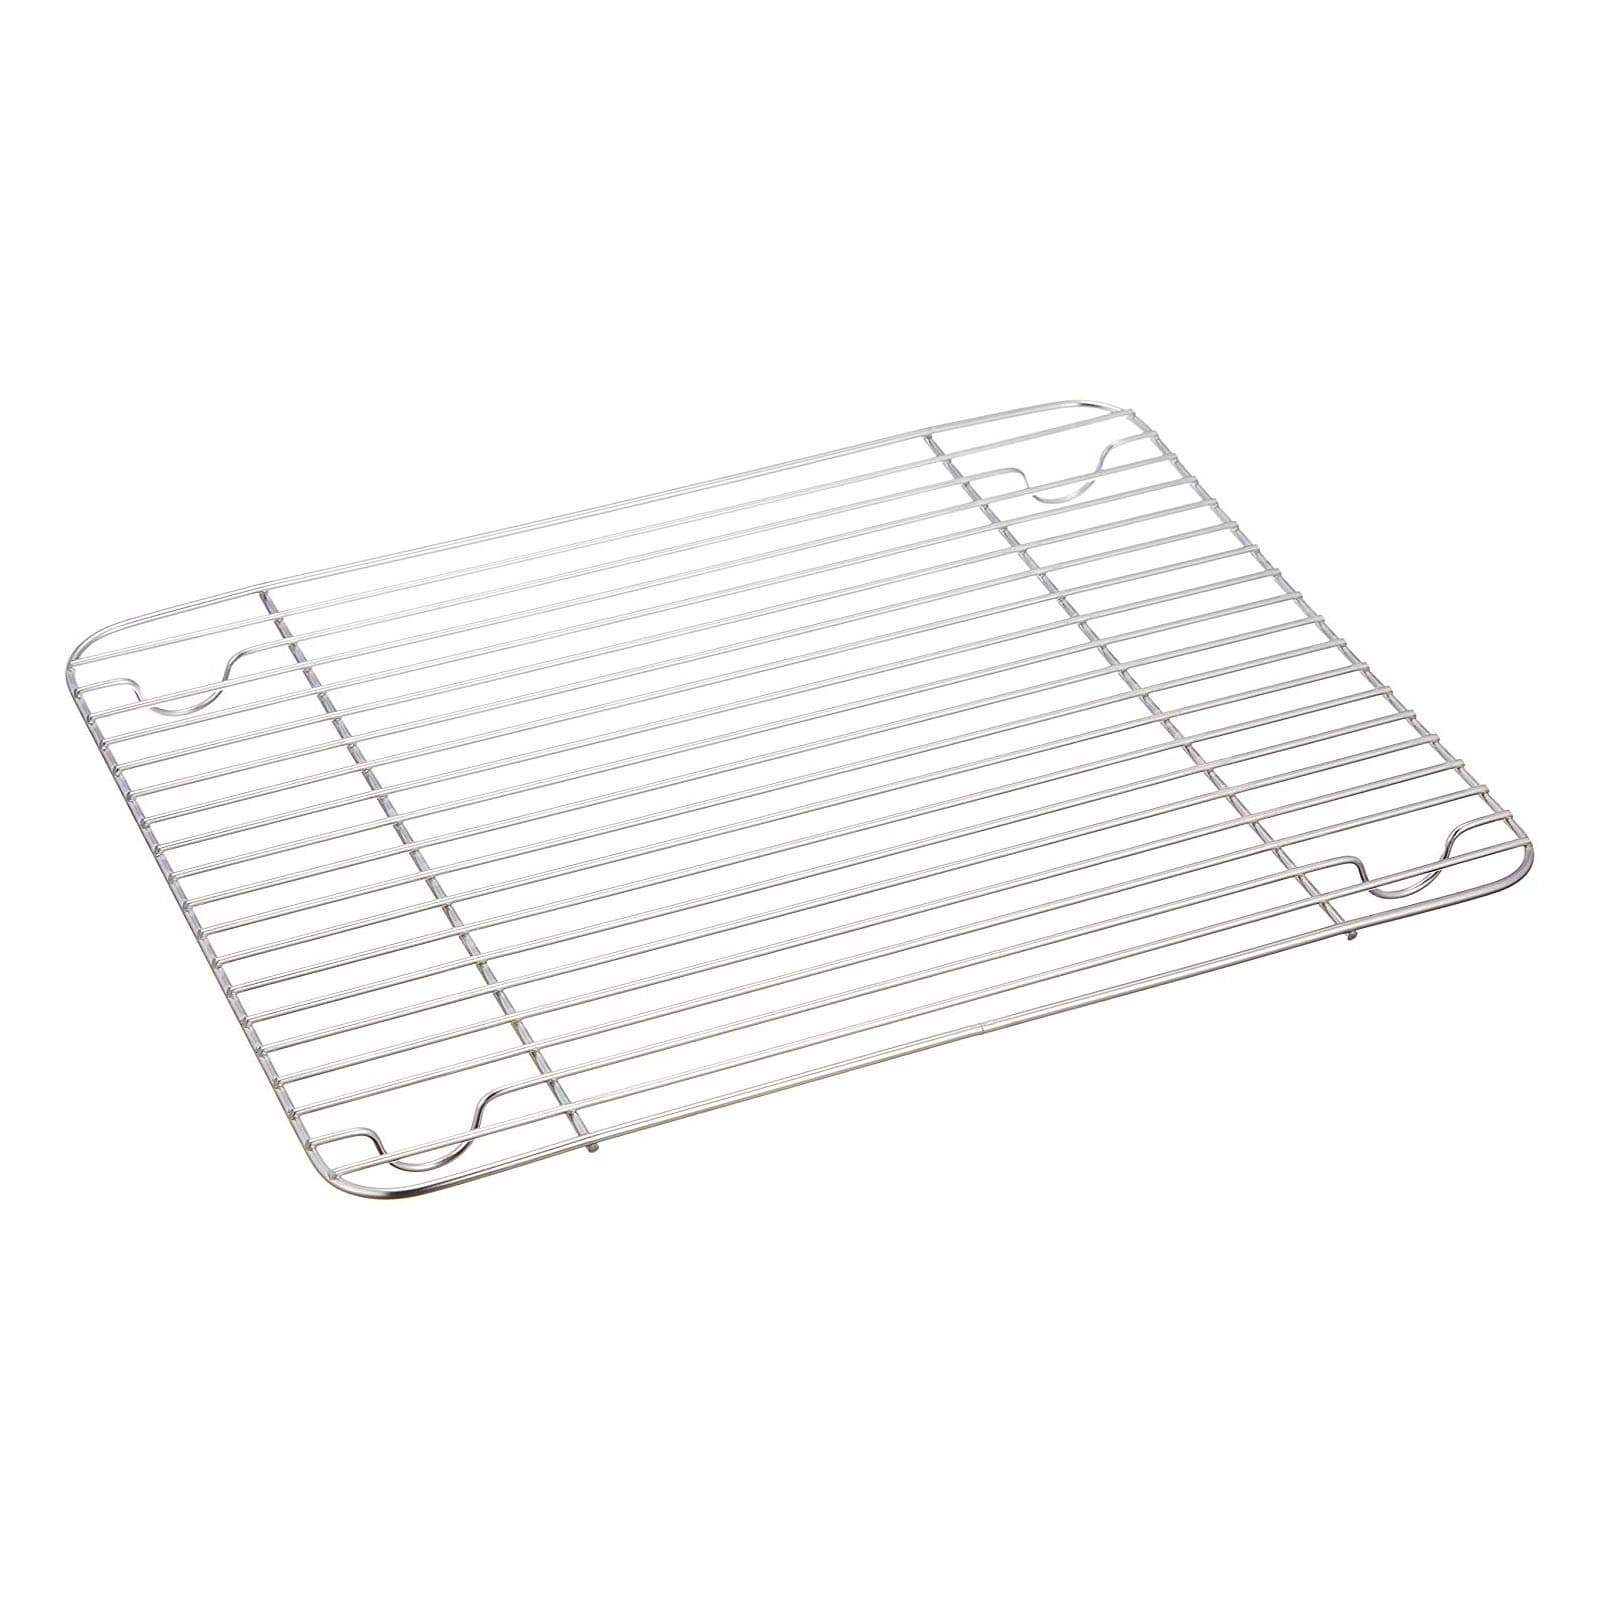 Ikeda Ecoclean Square Mesh Bat Pitch Width 6 mm (9 Sizes) No.9 (175x135mm) Cooling rack